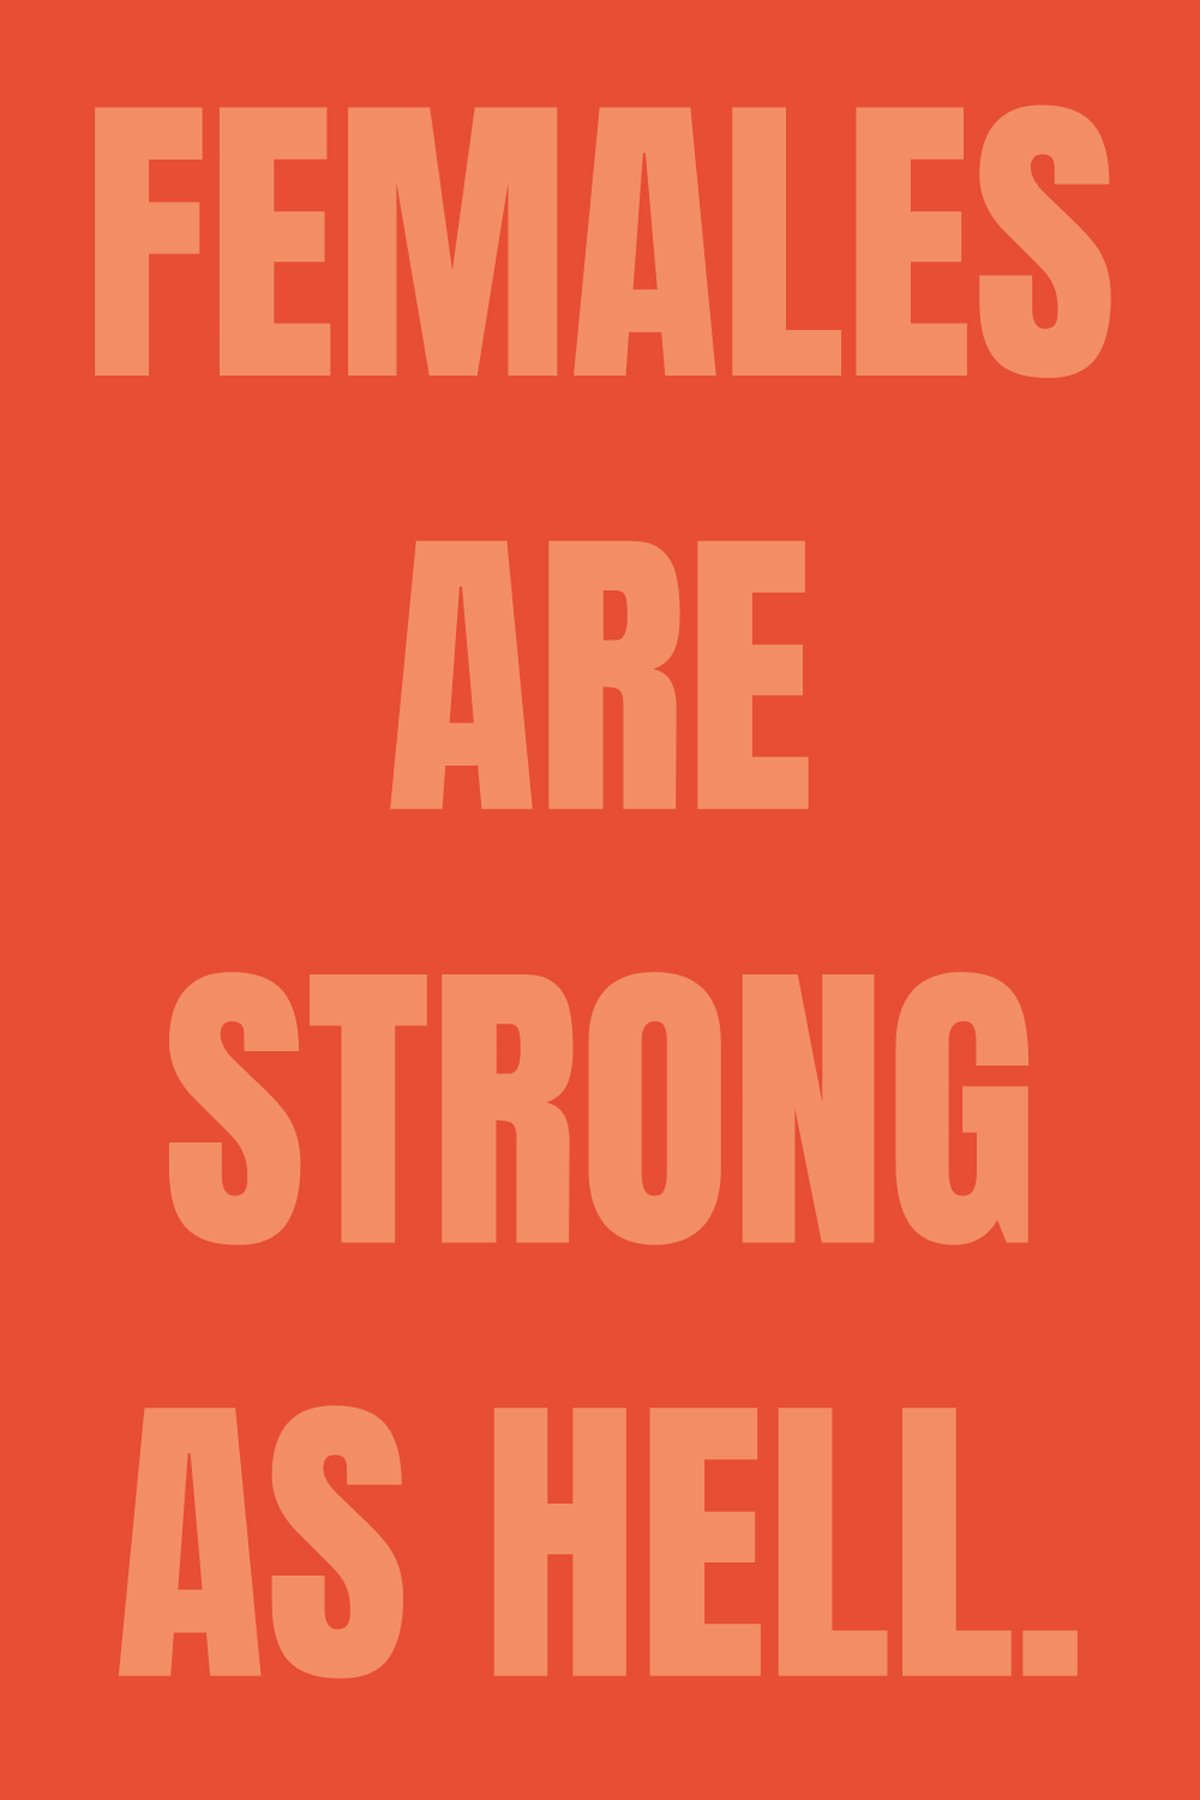 Strong Gym Quotes for Women